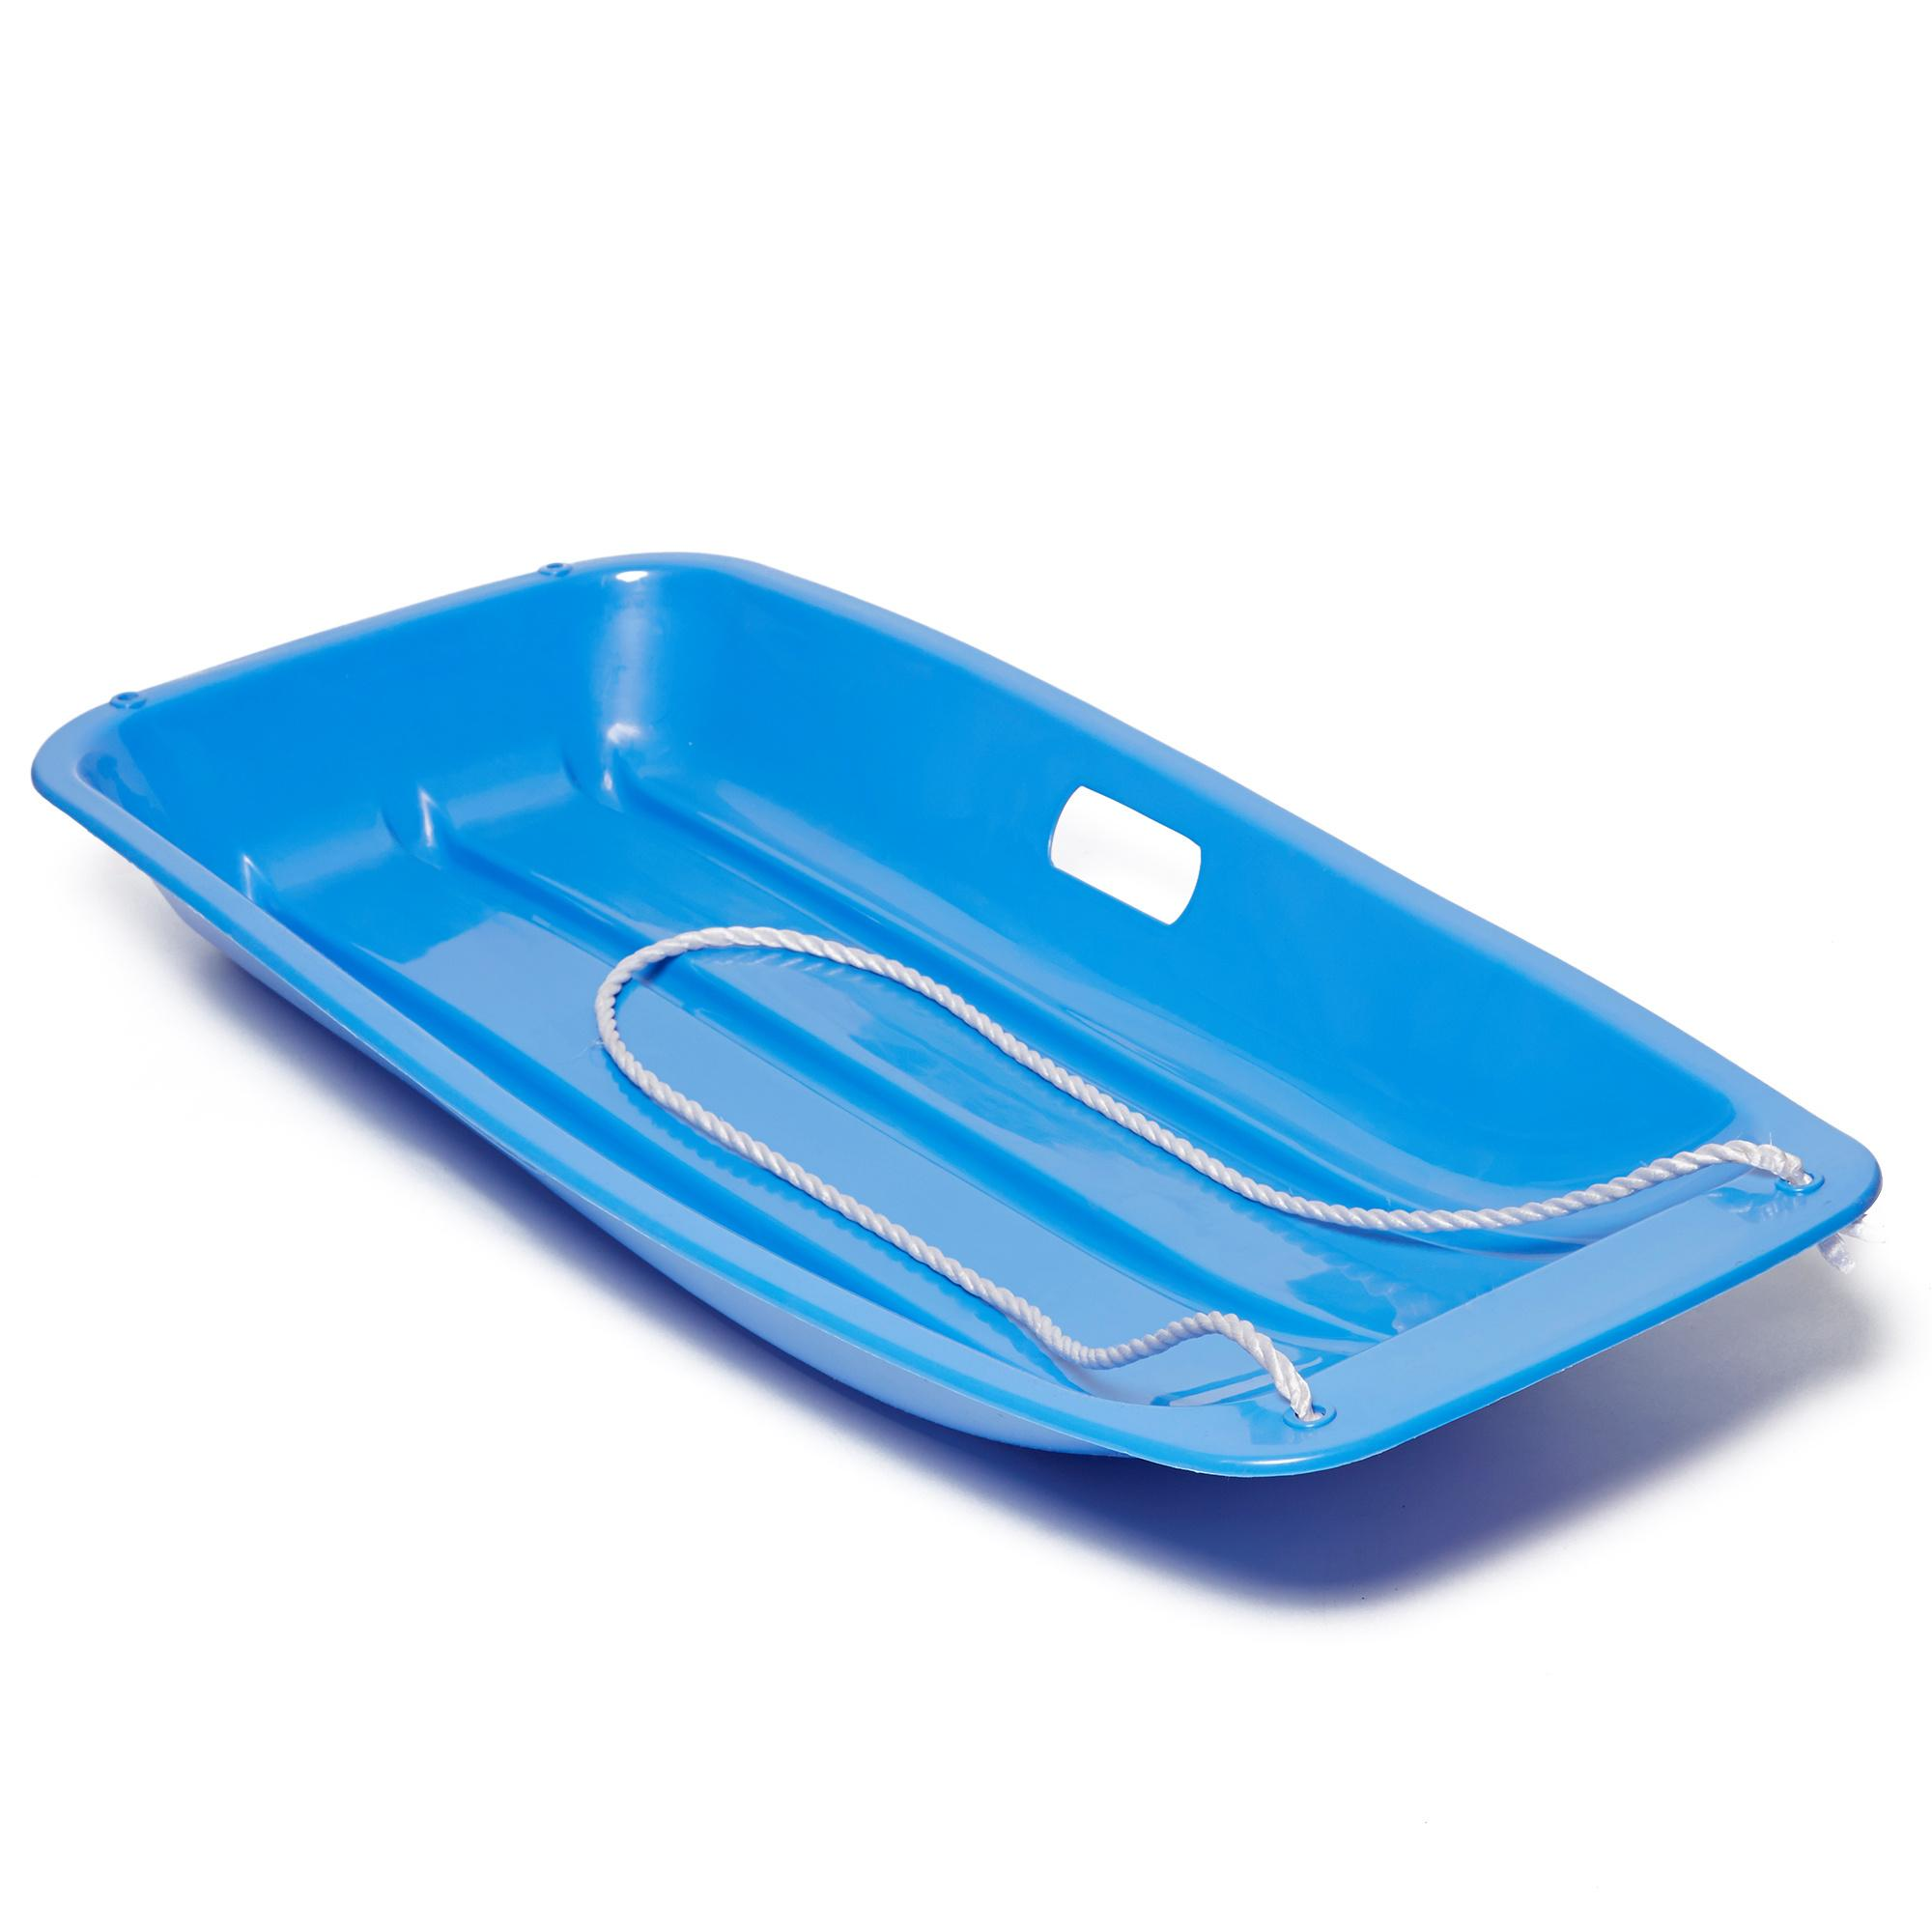 Manbi Sledge Blue